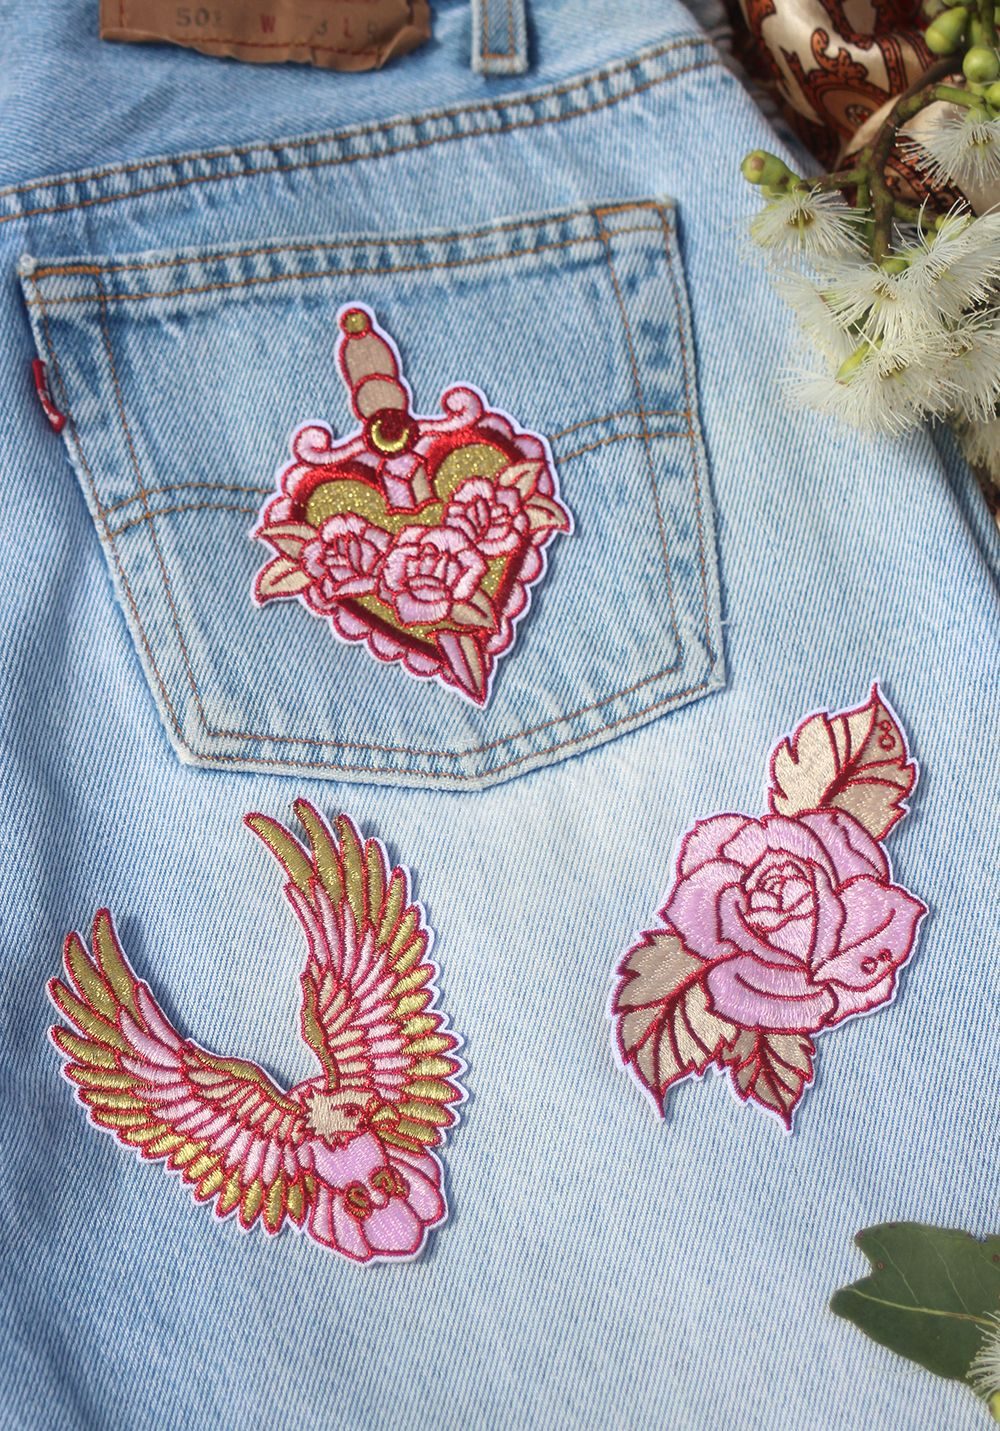 Patch set Eagle, Heart, Rose Handmade patch, Patches